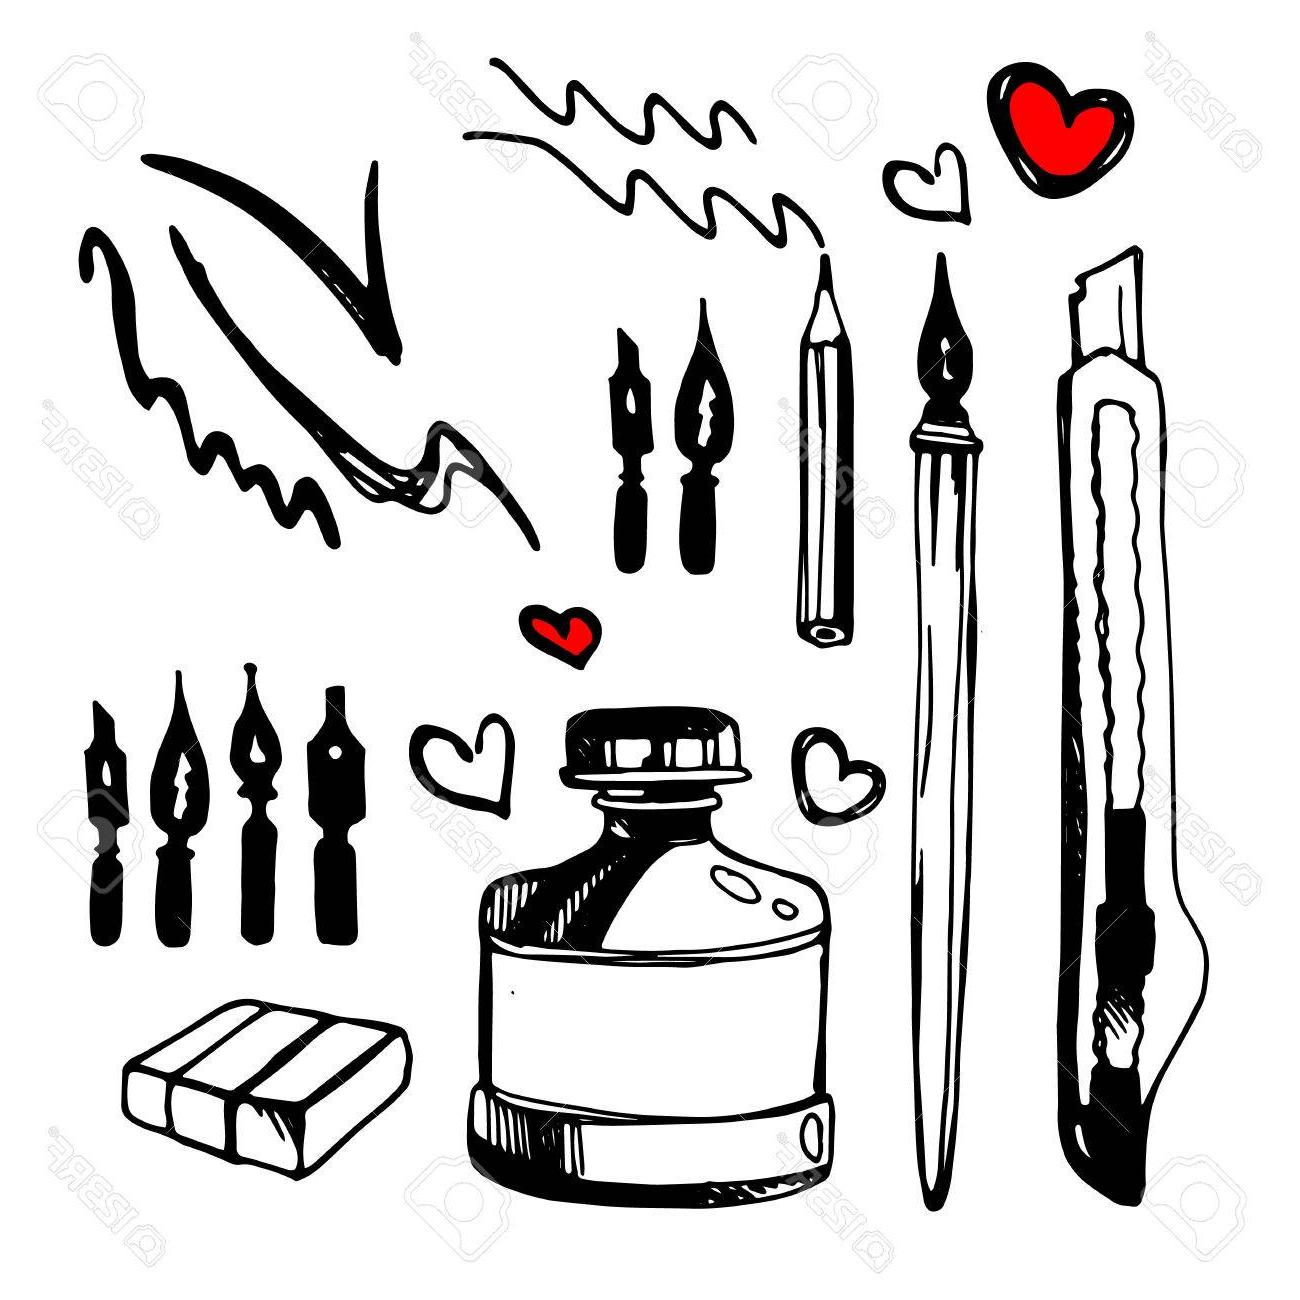 1300x1300 Hd Paint Brush Stroke Vector Drawing Ink Art Stock File Free